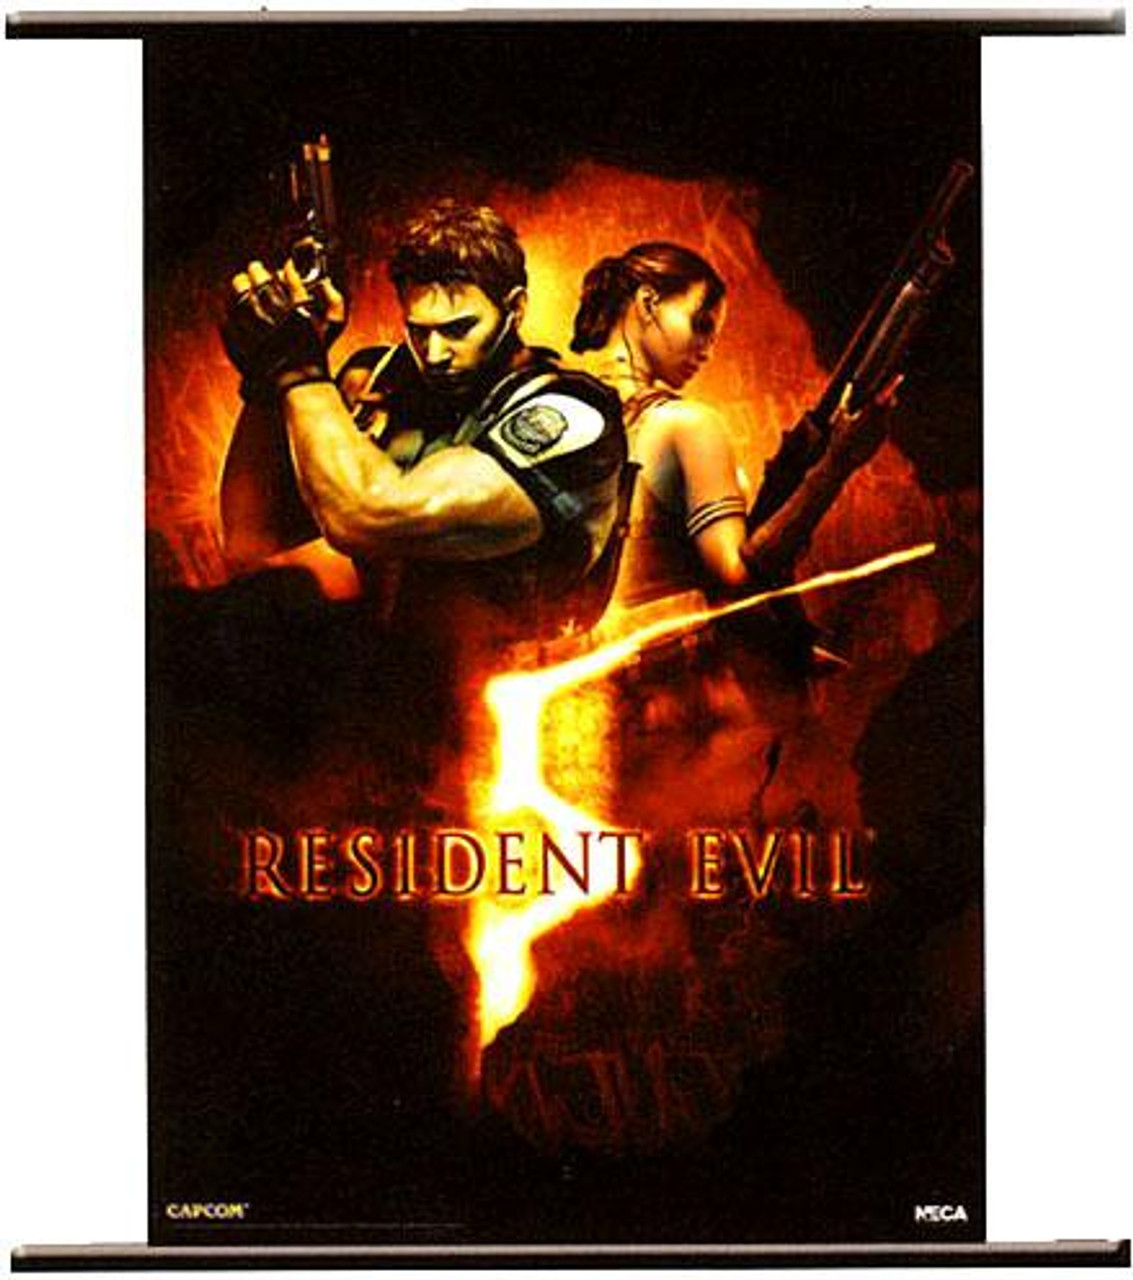 NECA Resident Evil 5 Wall Scroll [Box Art]